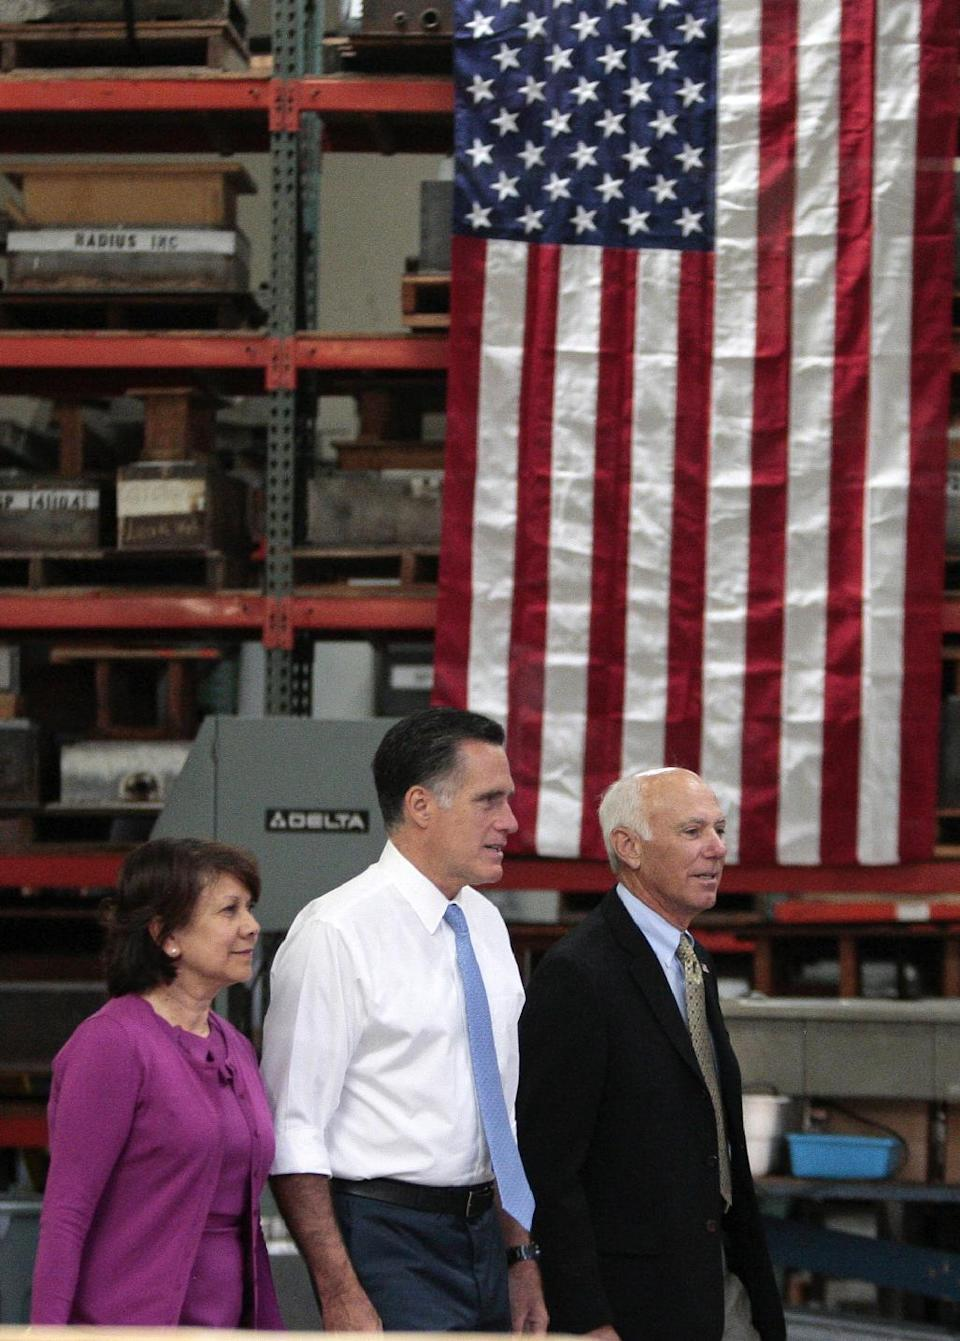 Republican presidential candidate, former Massachusetts Gov. Mitt Romney, center, arrives with Beverly Oncology and Imaging CEO Ruth Lopez Novodor, left, and Edural CEO Jim Burra for a small-business roundtable during a campaign stop at Endural LLC in Costa Mesa, Calif., Monday, July 23, 2012. (AP Photo/Jason Redmond)